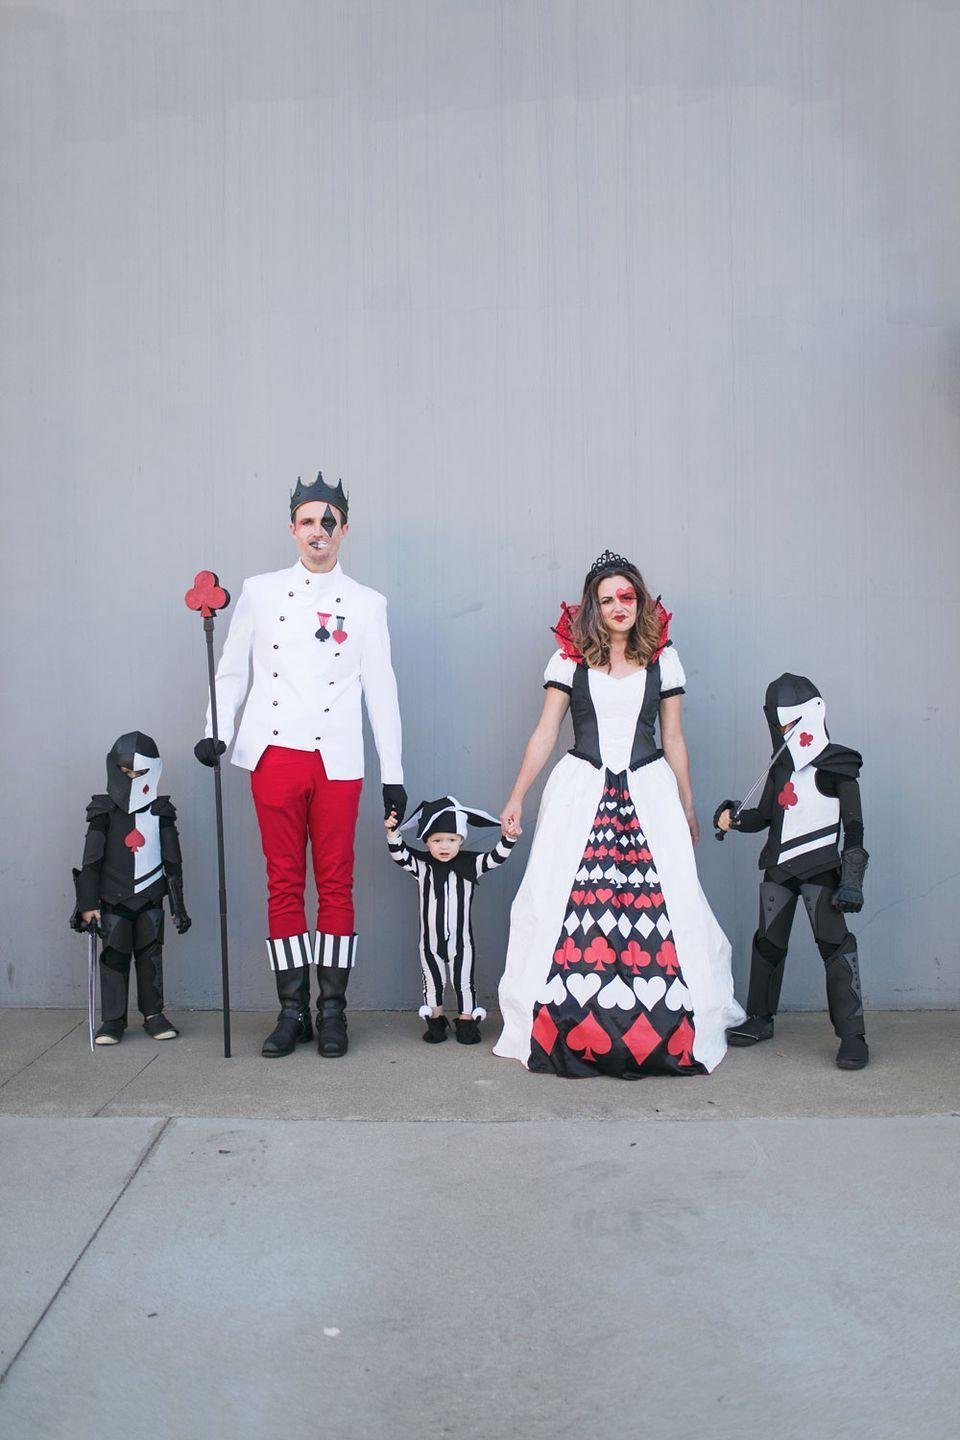 """<p>The Queen of Hearts is nothing without the people who <em>have</em> her heart, after all! We love the idea of making this red, white, and black ensemble a family affair.</p><p><strong>Get the tutorial at <a href=""""https://tellloveandparty.com/2018/10/diy-queen-of-hearts-family-costume.html"""" rel=""""nofollow noopener"""" target=""""_blank"""" data-ylk=""""slk:Tell Love & Party"""" class=""""link rapid-noclick-resp"""">Tell Love & Party</a>.</strong></p><p><a class=""""link rapid-noclick-resp"""" href=""""https://www.amazon.com/PRANG-Washable-Tempera-16-Ounce-10701/dp/B000QE2WDS?tag=syn-yahoo-20&ascsubtag=%5Bartid%7C10050.g.29074815%5Bsrc%7Cyahoo-us"""" rel=""""nofollow noopener"""" target=""""_blank"""" data-ylk=""""slk:SHOP RED PAINT"""">SHOP RED PAINT</a></p>"""